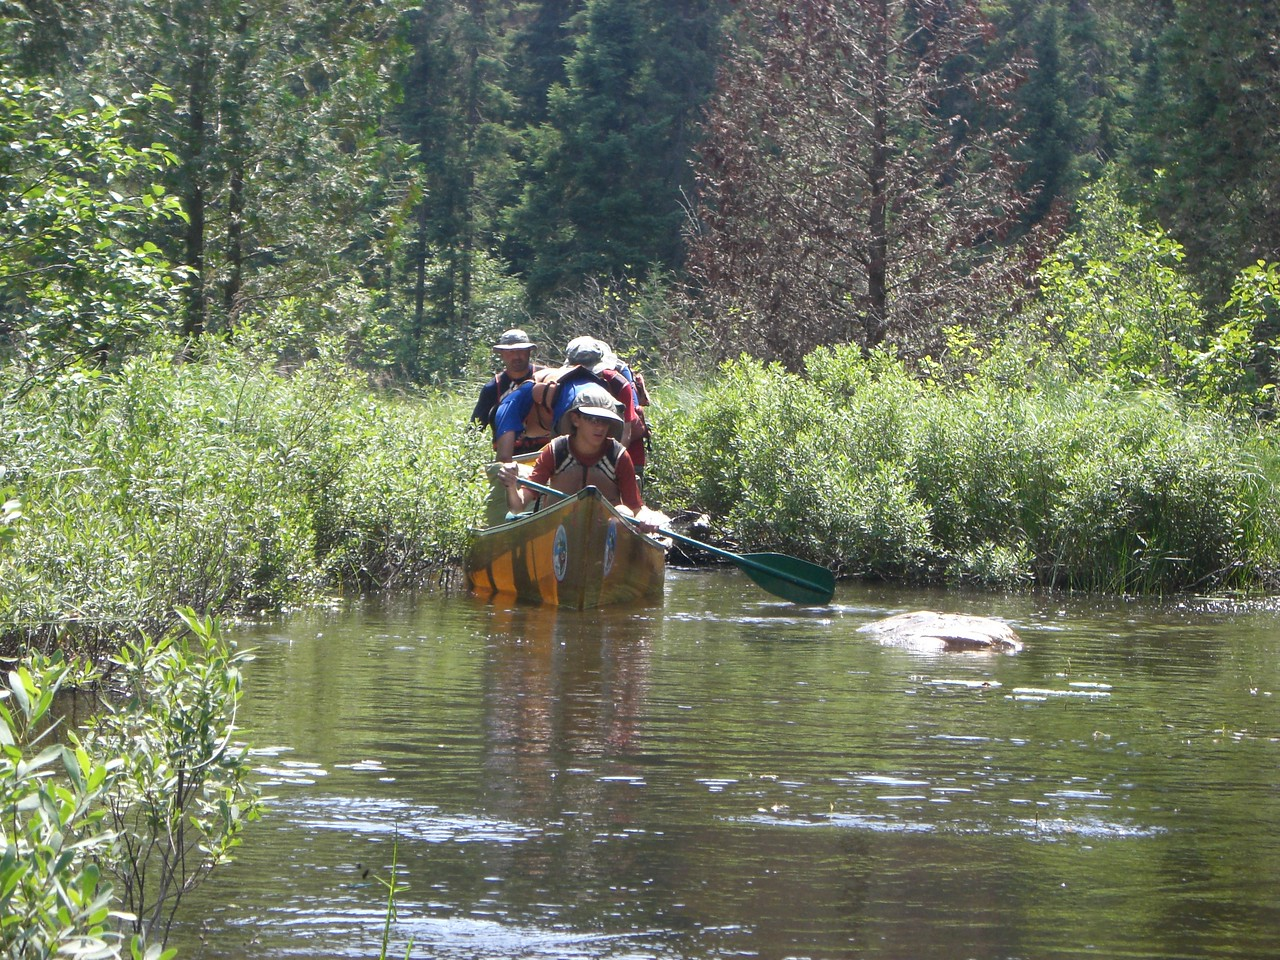 Crossing one of 5 small beaver dams on the wet portage to Sunday Lake